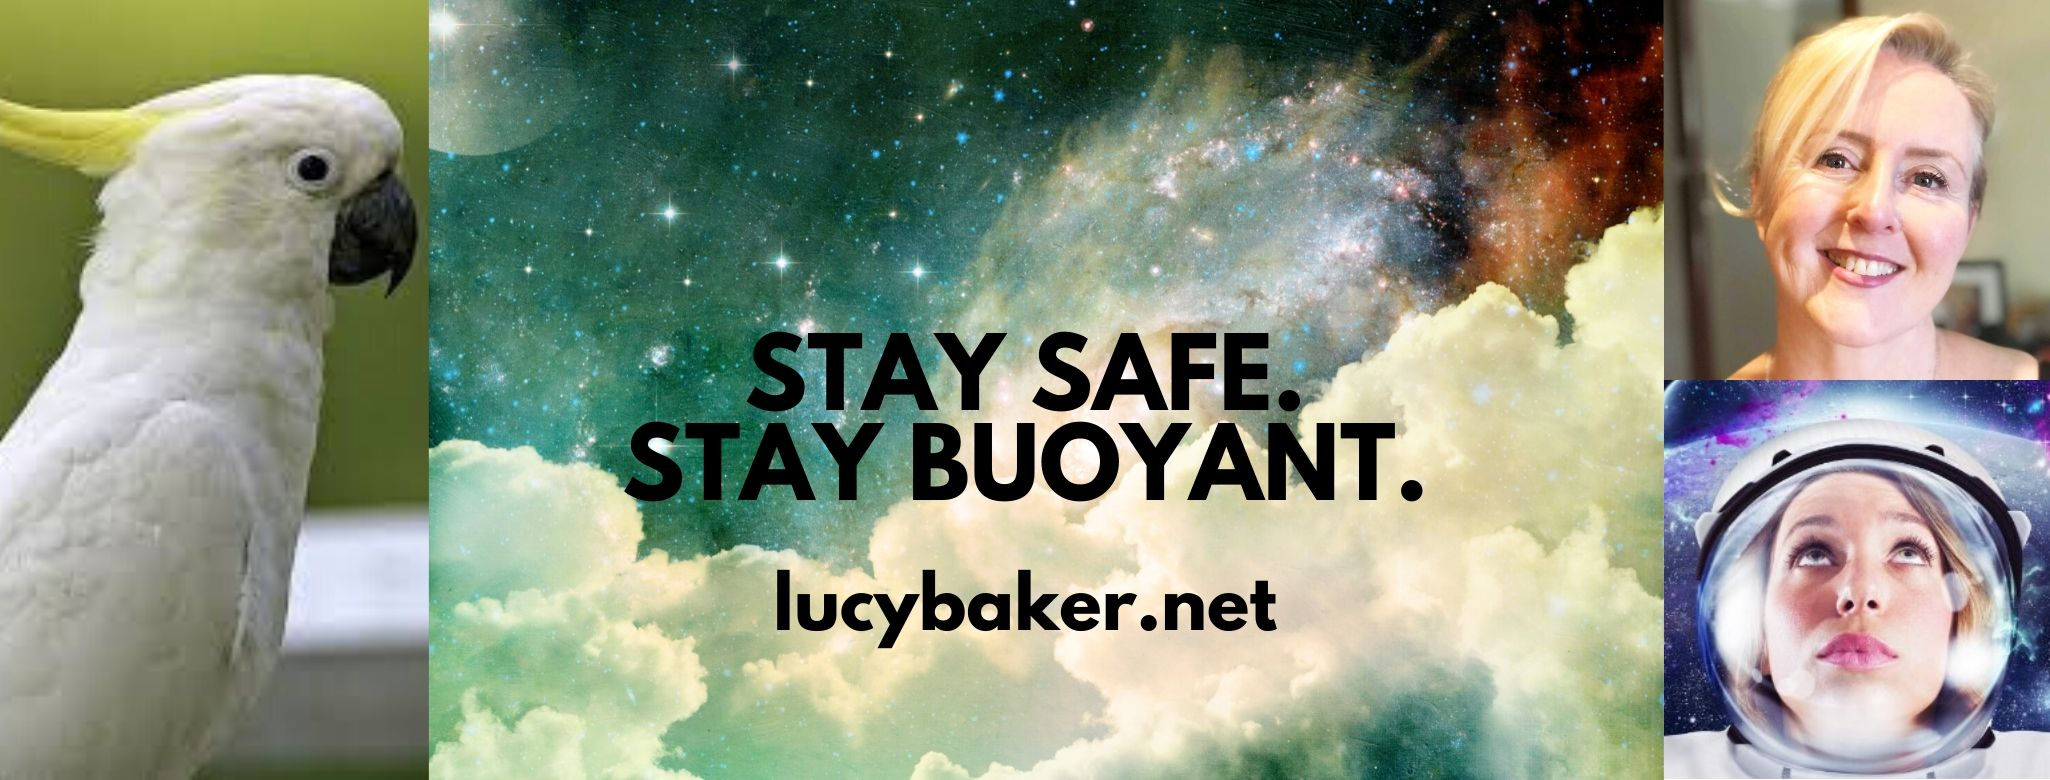 lucy baker banner hypno journeys